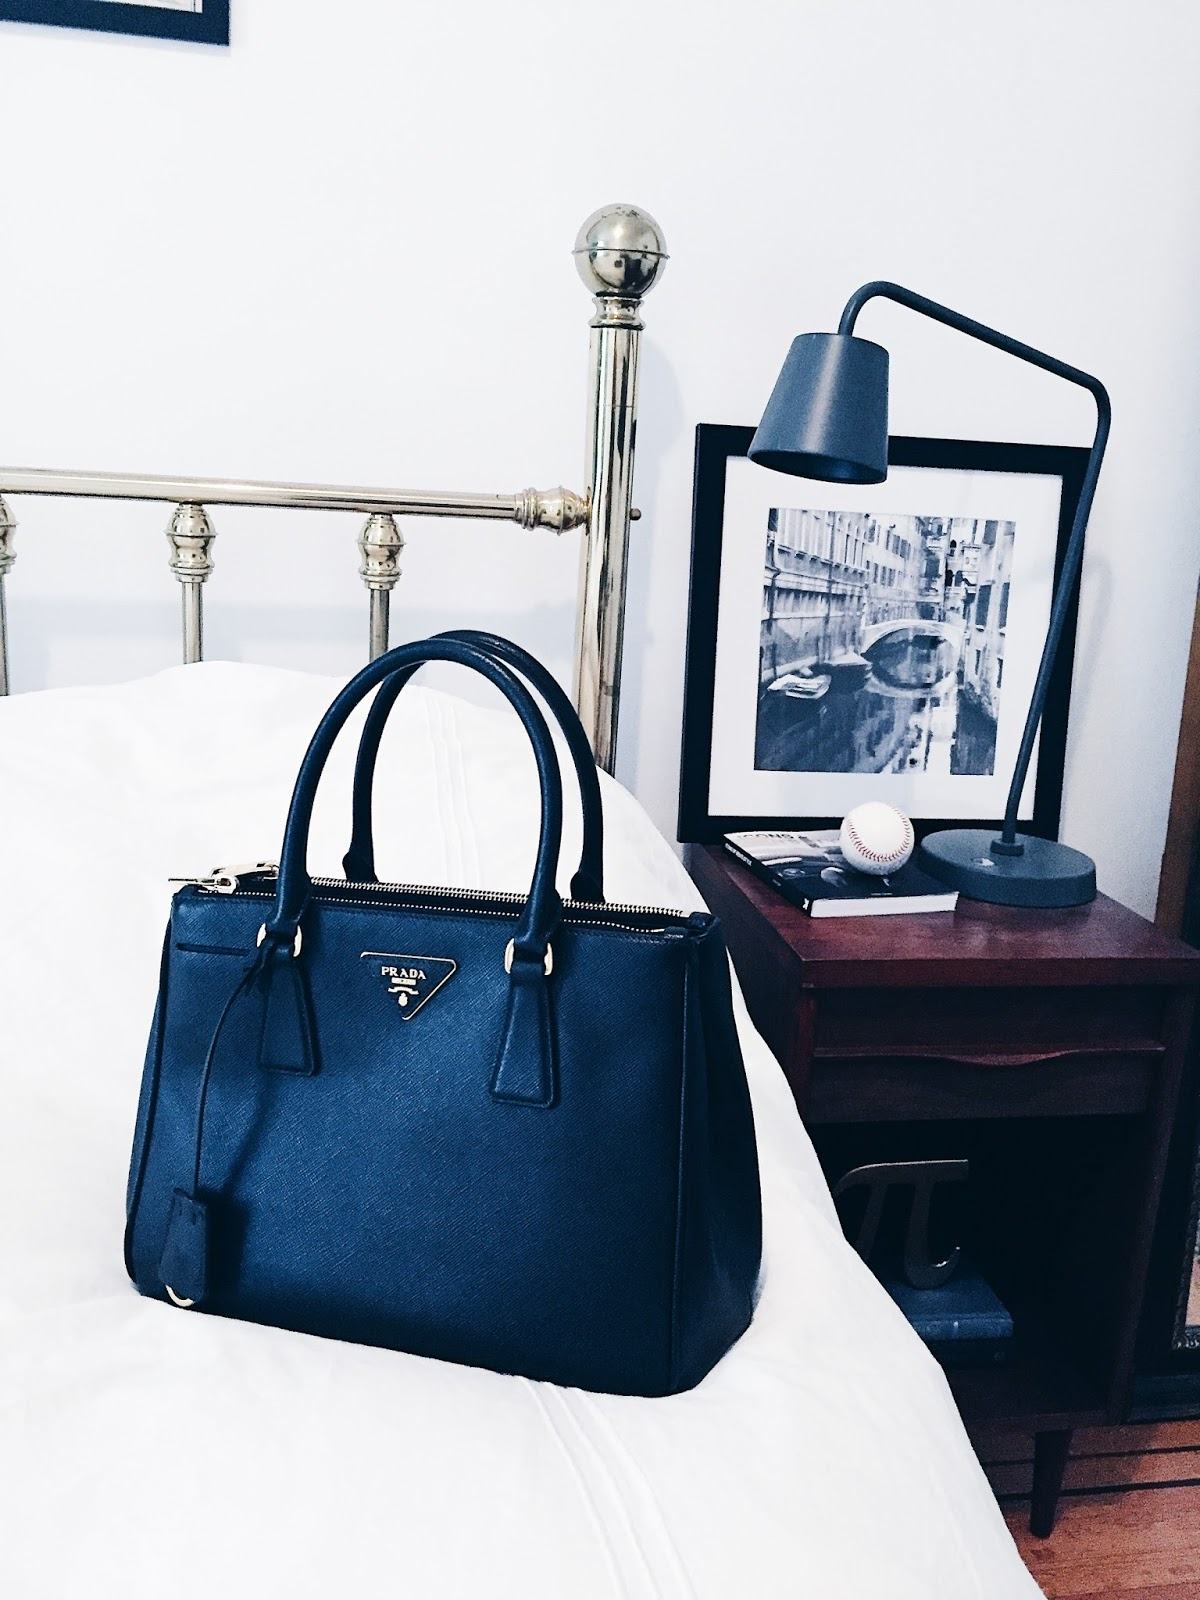 prada saffiano luxury handbag